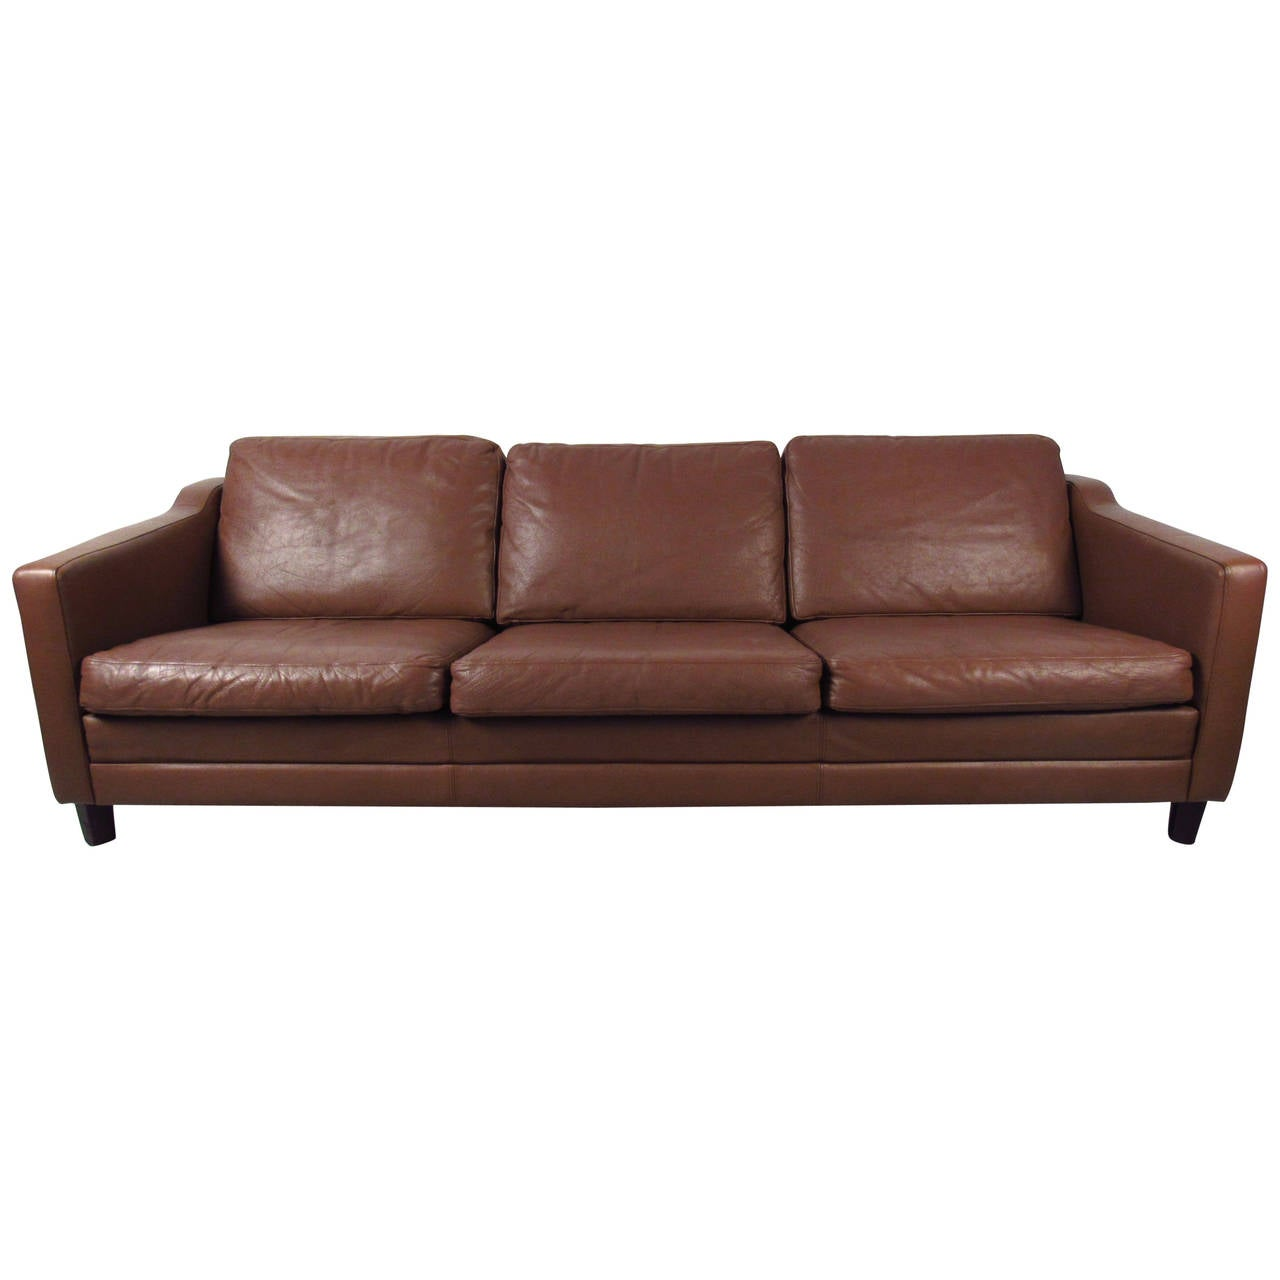 Etonnant Scandinavian Modern Brown Leather Sofa In The Style Of Børge Mogensen For  Sale. This Beautiful Mid Century ...